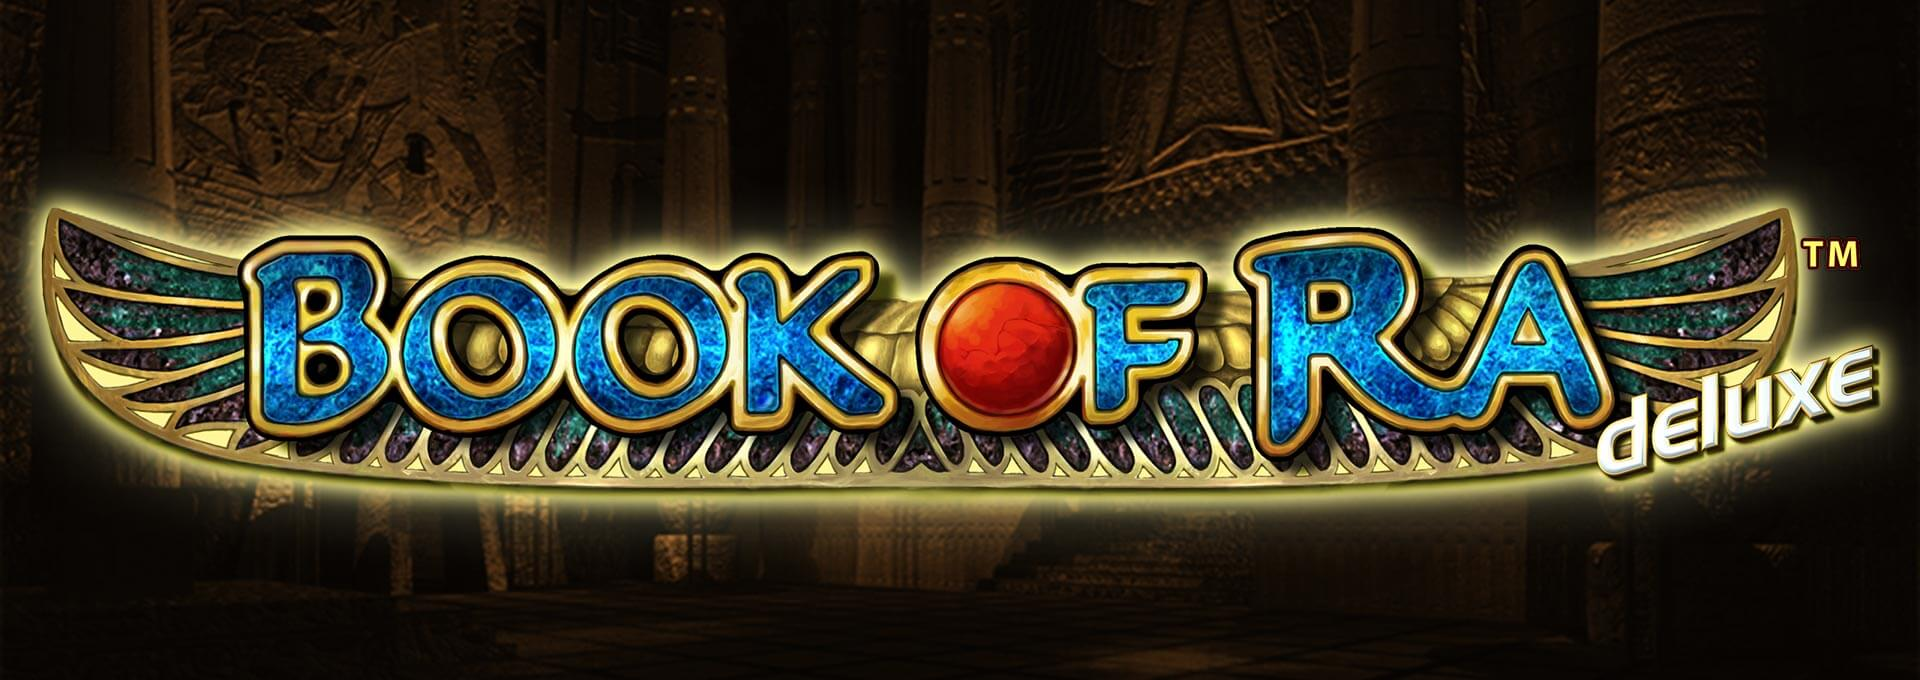 online casino table games book of ra deluxe download